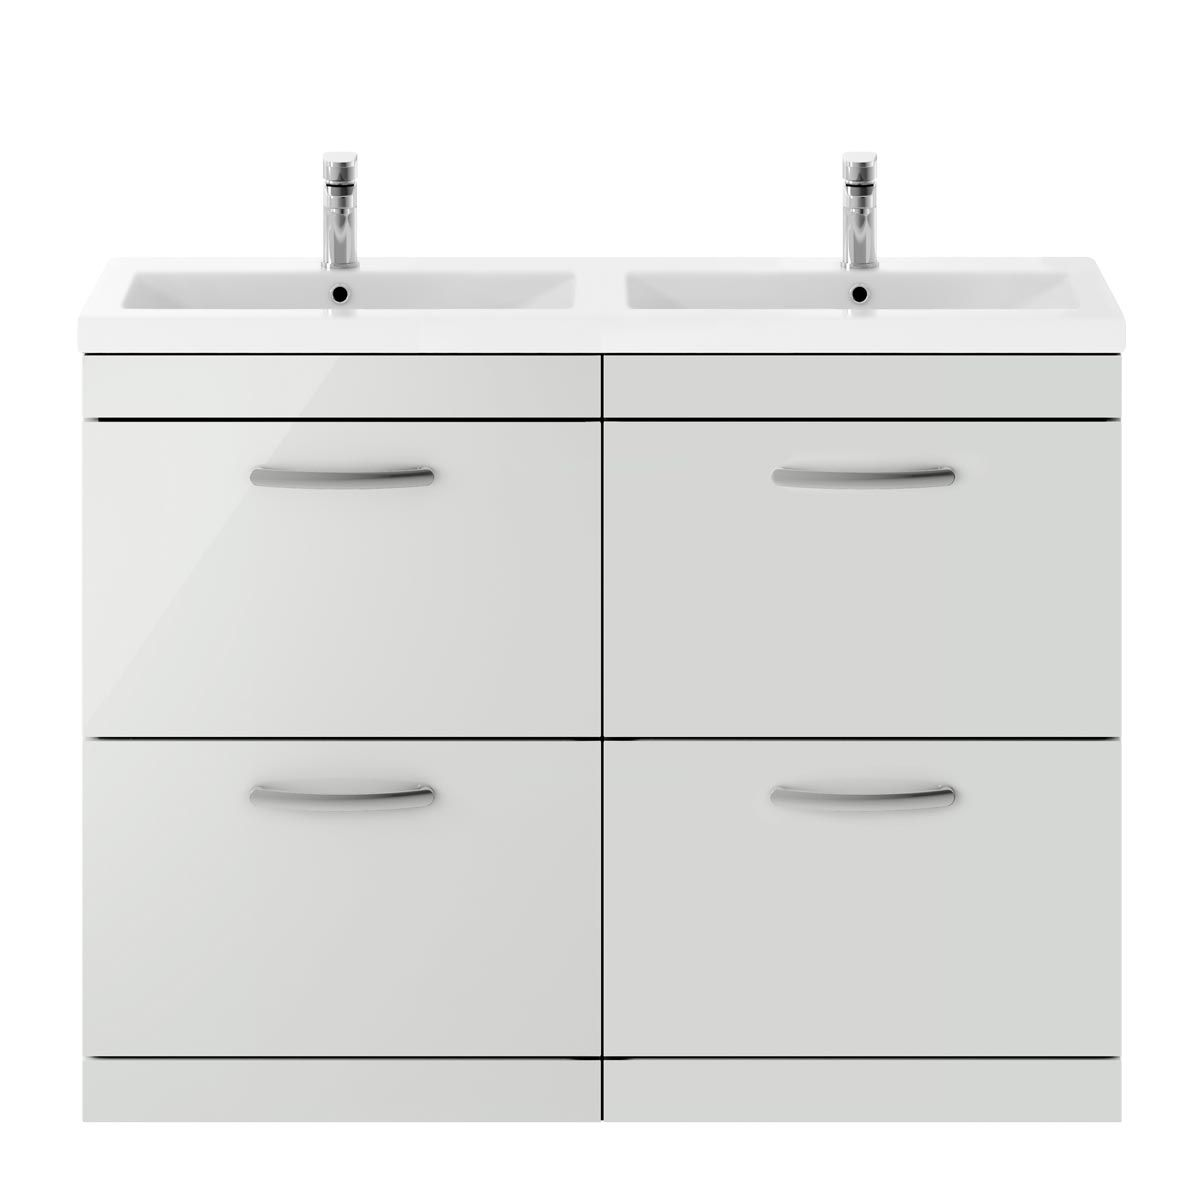 Nuie Athena Gloss Grey Mist 4 Drawer Floor Standing Vanity Unit with Ceramic Double Basin 1200mm